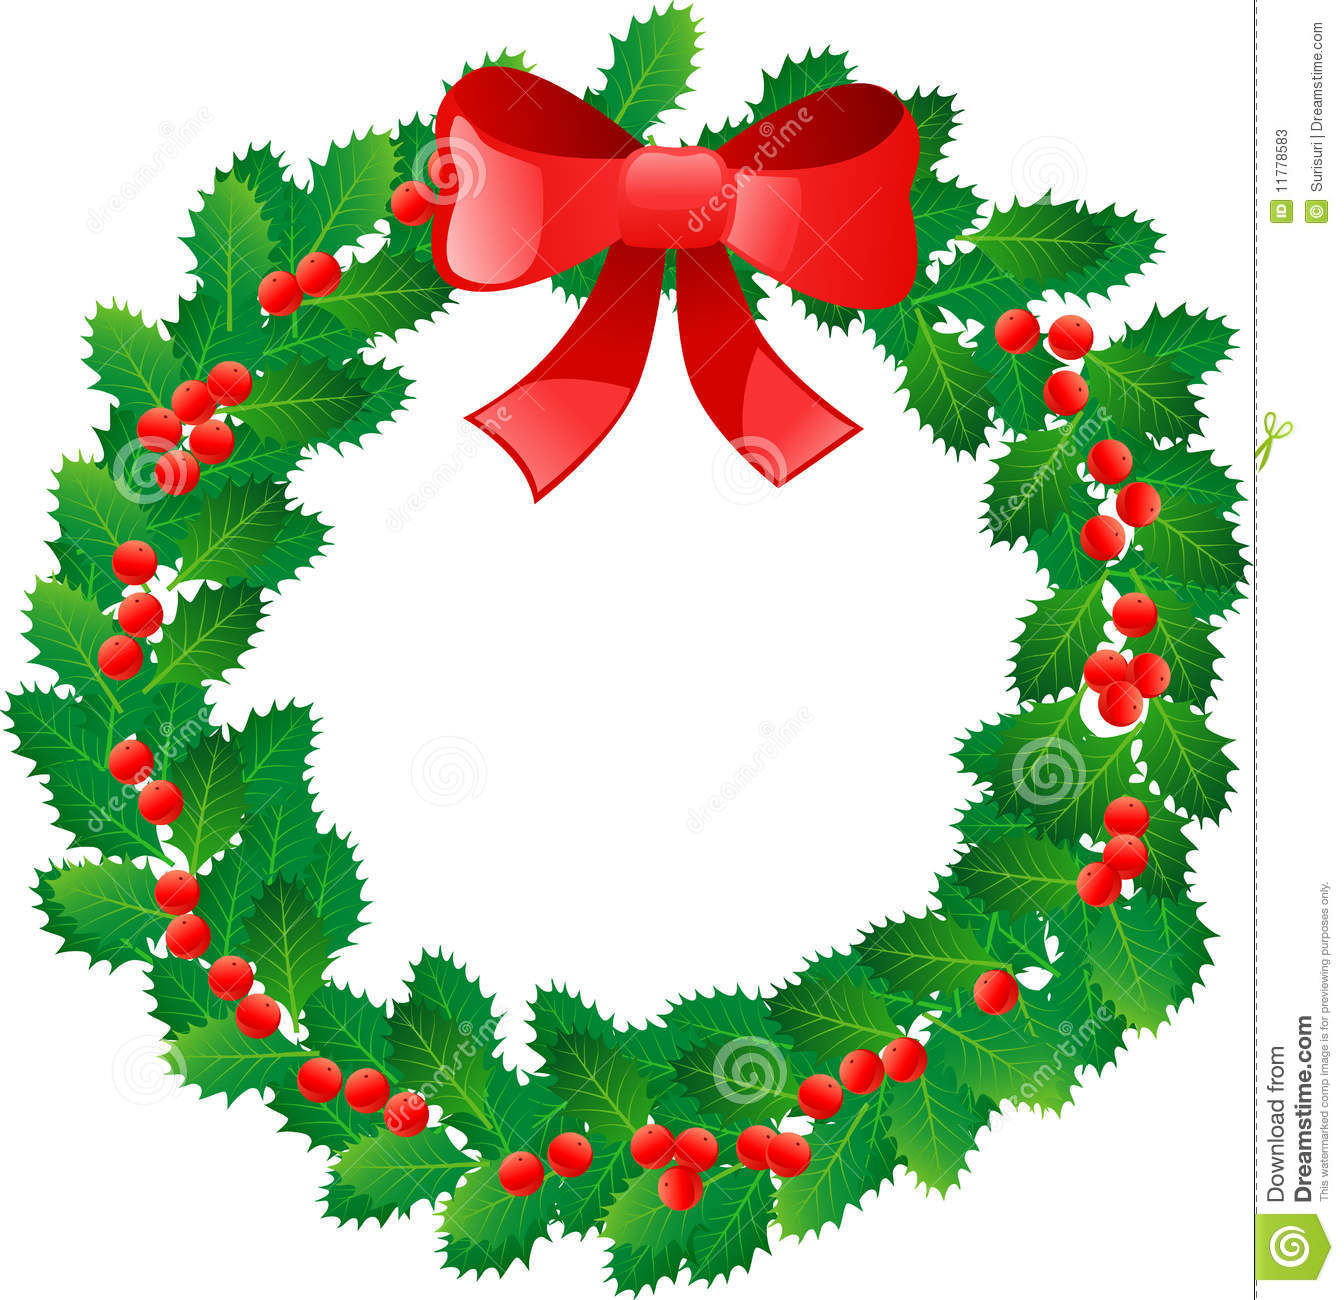 Wreath clipart graphic Christmas Clipart Clipart Clipart Images